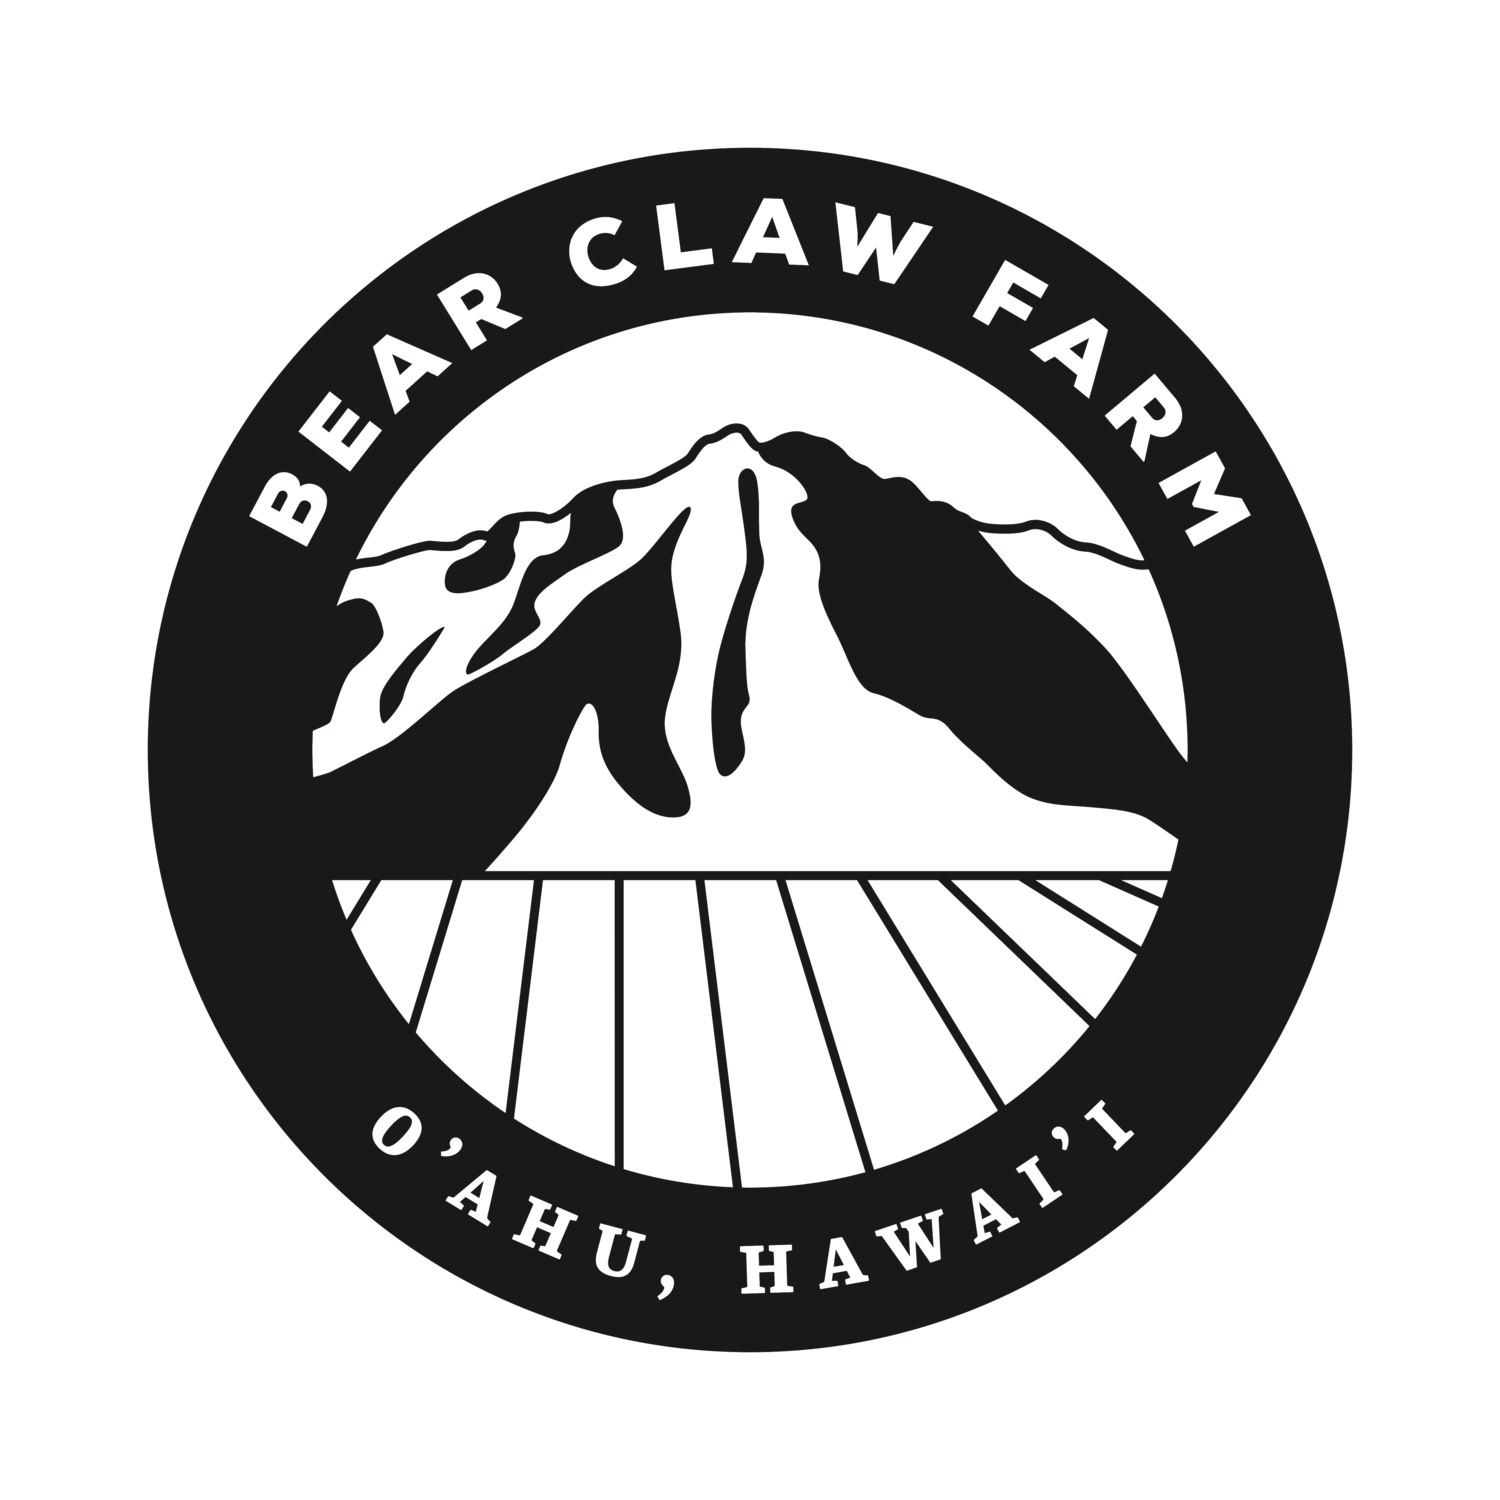 Bear Claw Farm